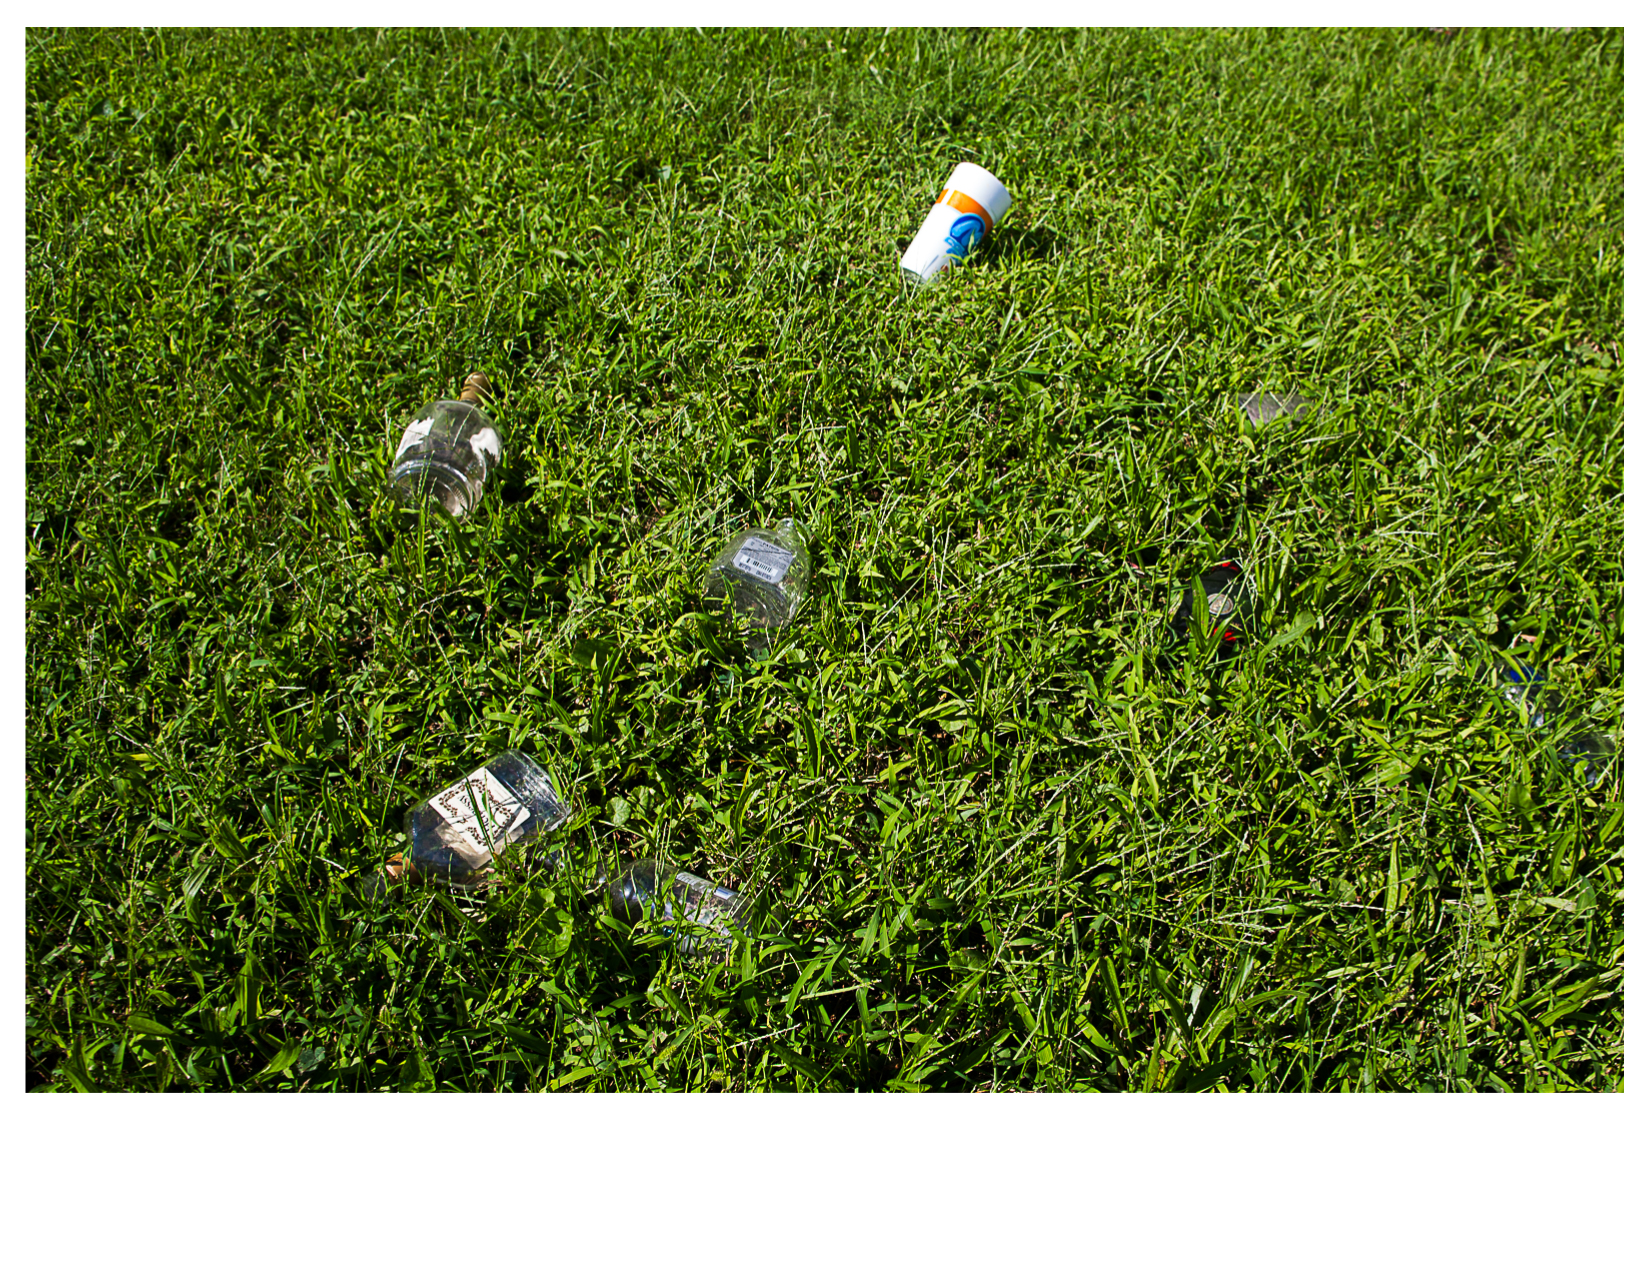 Discarded Liquor Bottles on Lawn, East St. Louis, IL